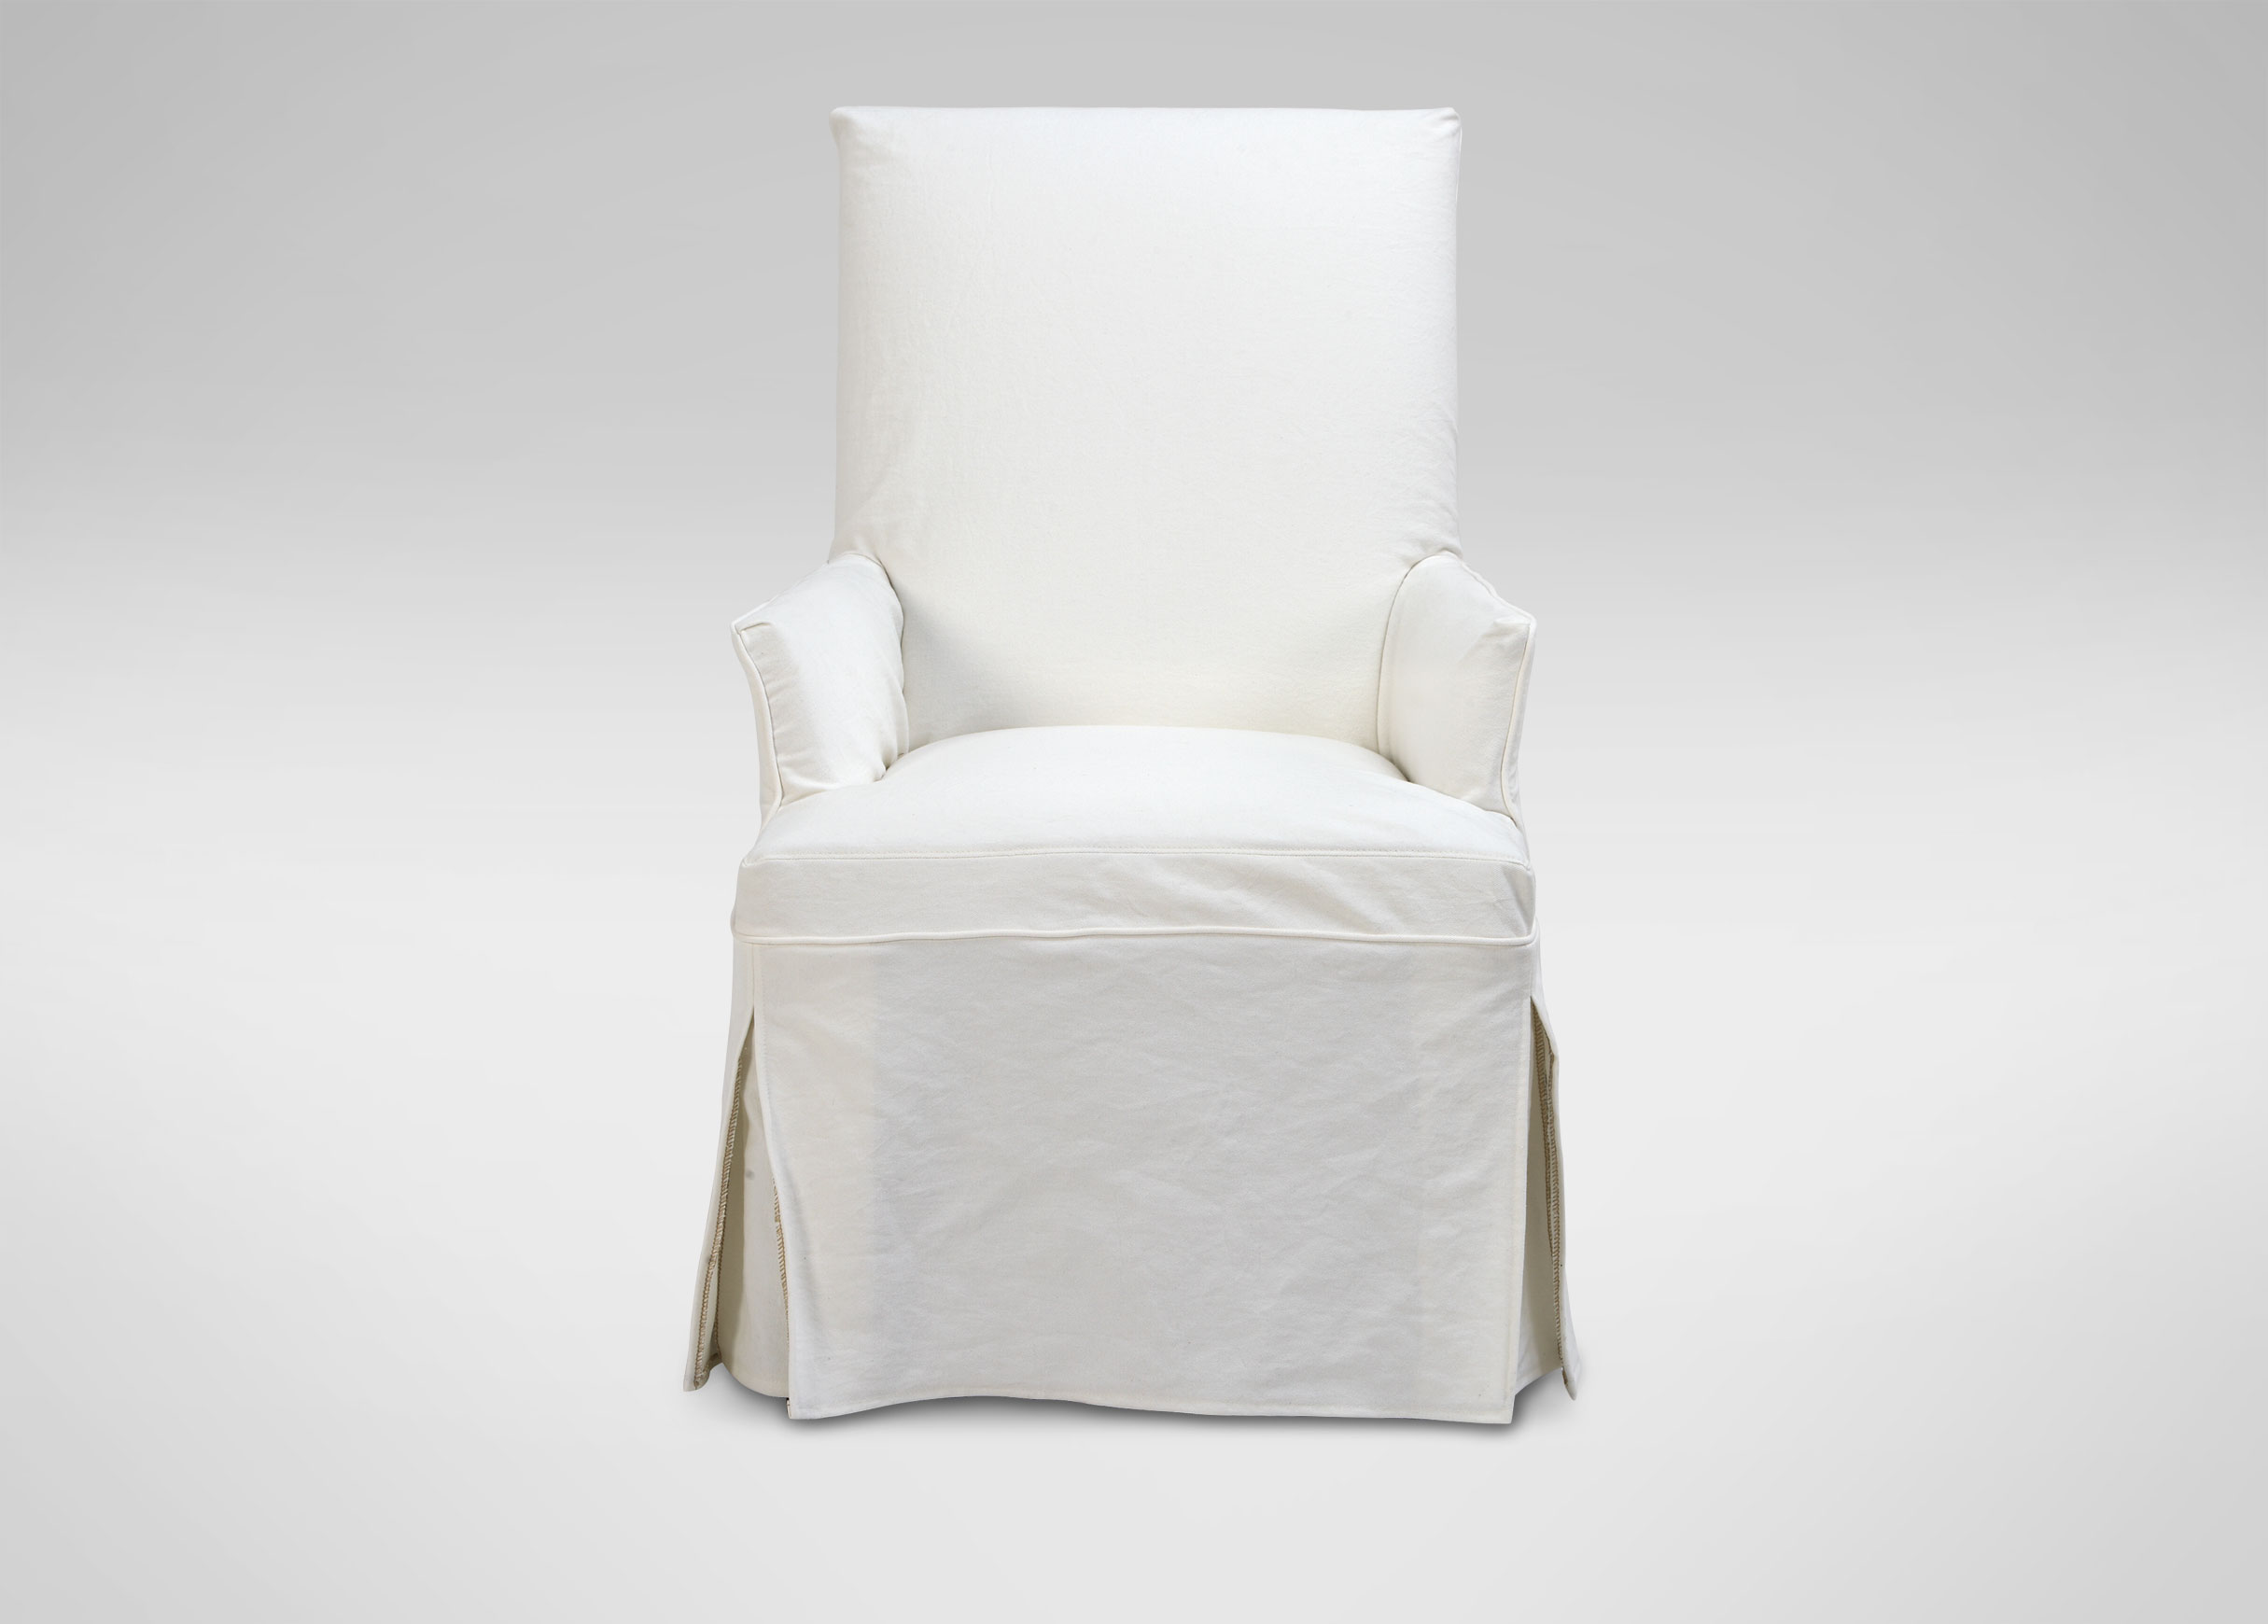 Furniture & Rug: Chic Ethan Allen Slipcovers For Seat Accessories ...